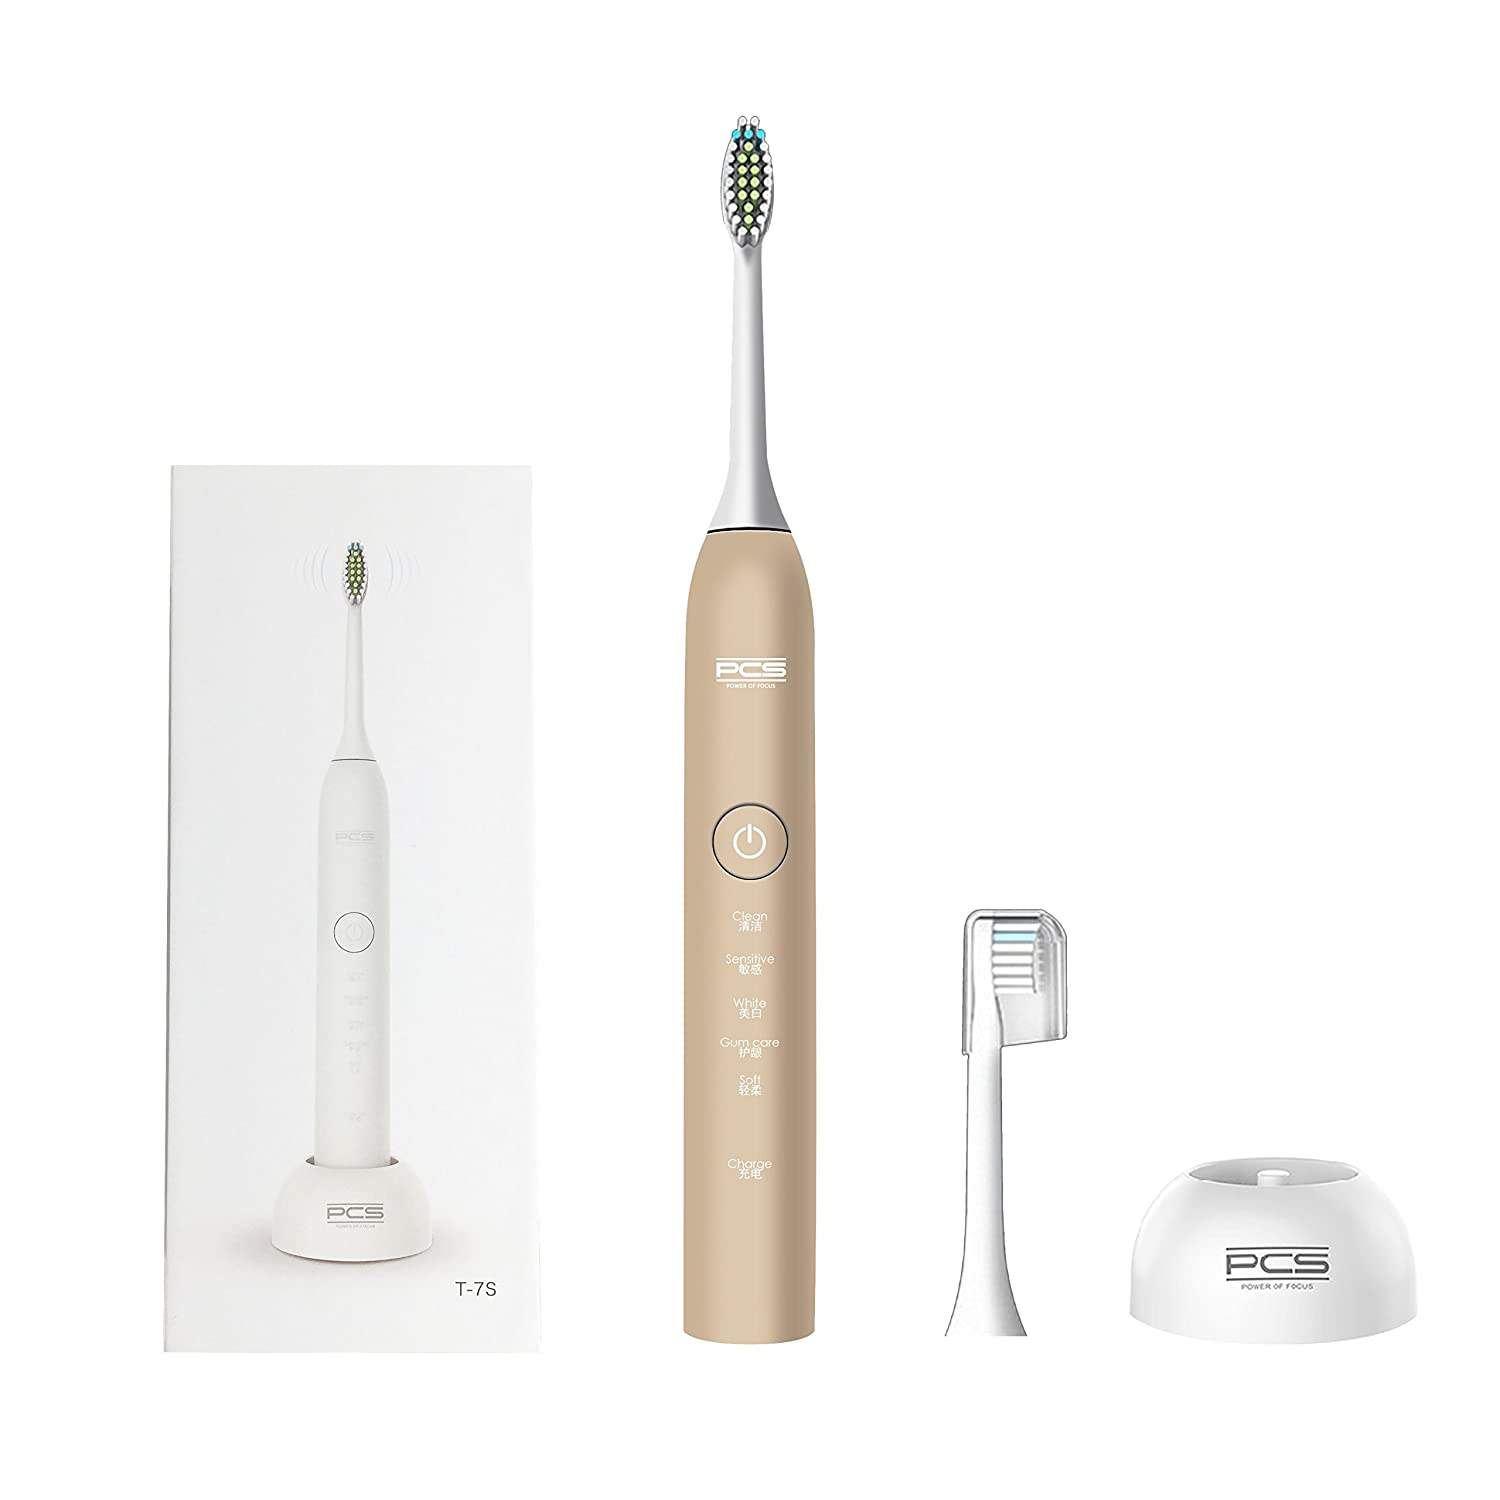 PCS Professional Sonic Electric Toothbrush Wireless Rechargeable Battery 5 Brushing Mode Last for 30 Days with Replacement Heads (Rose Gold) ITATOO